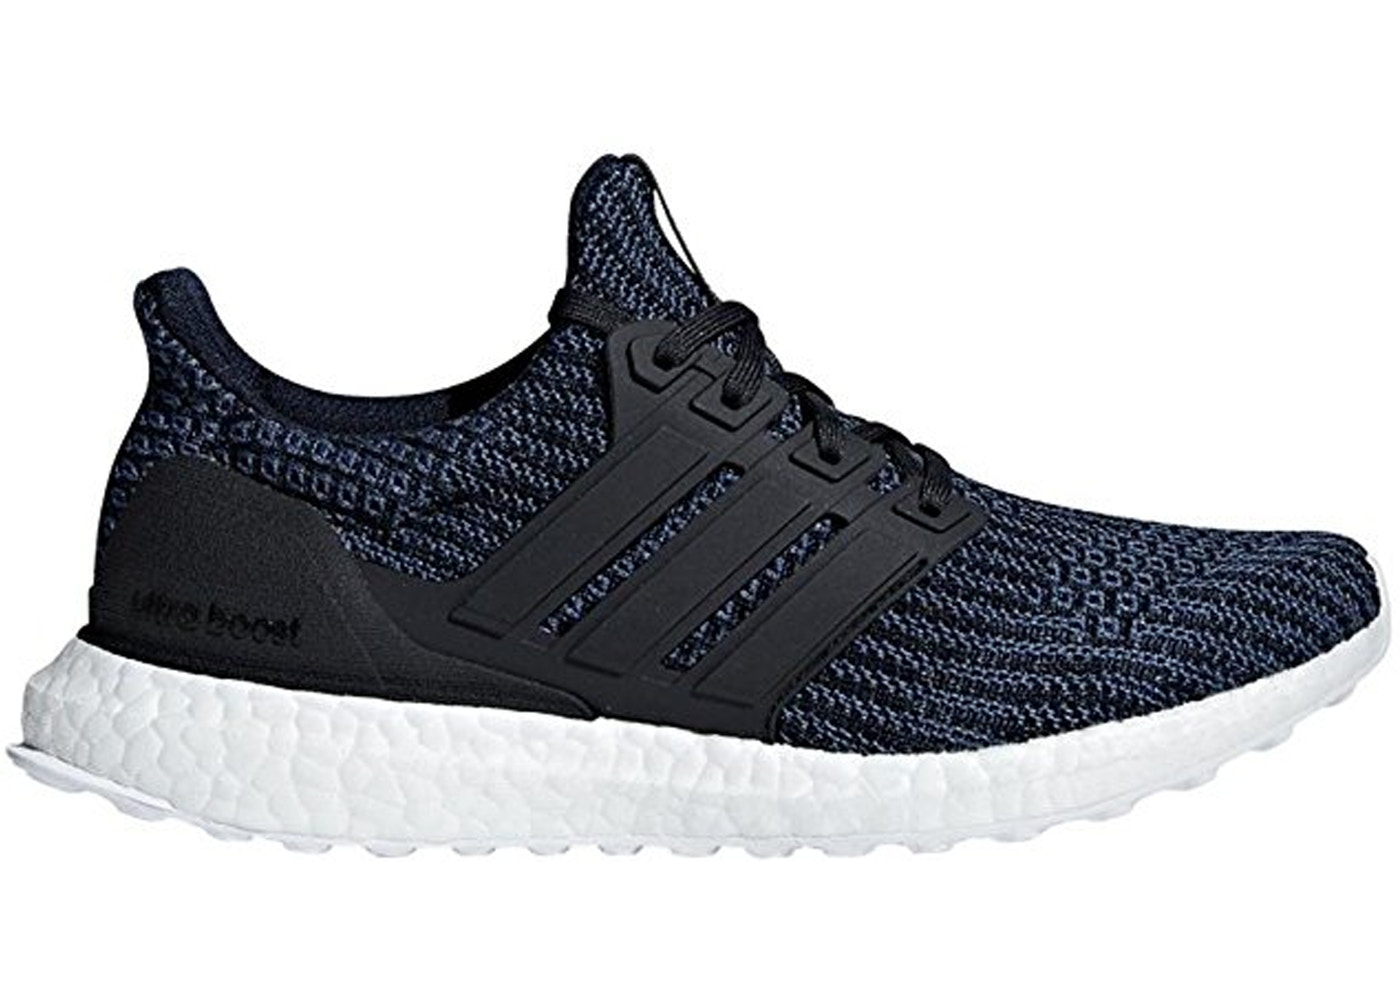 Parley x adidas Ultra Boost 4.0 Dropping This Month Dr Wongs